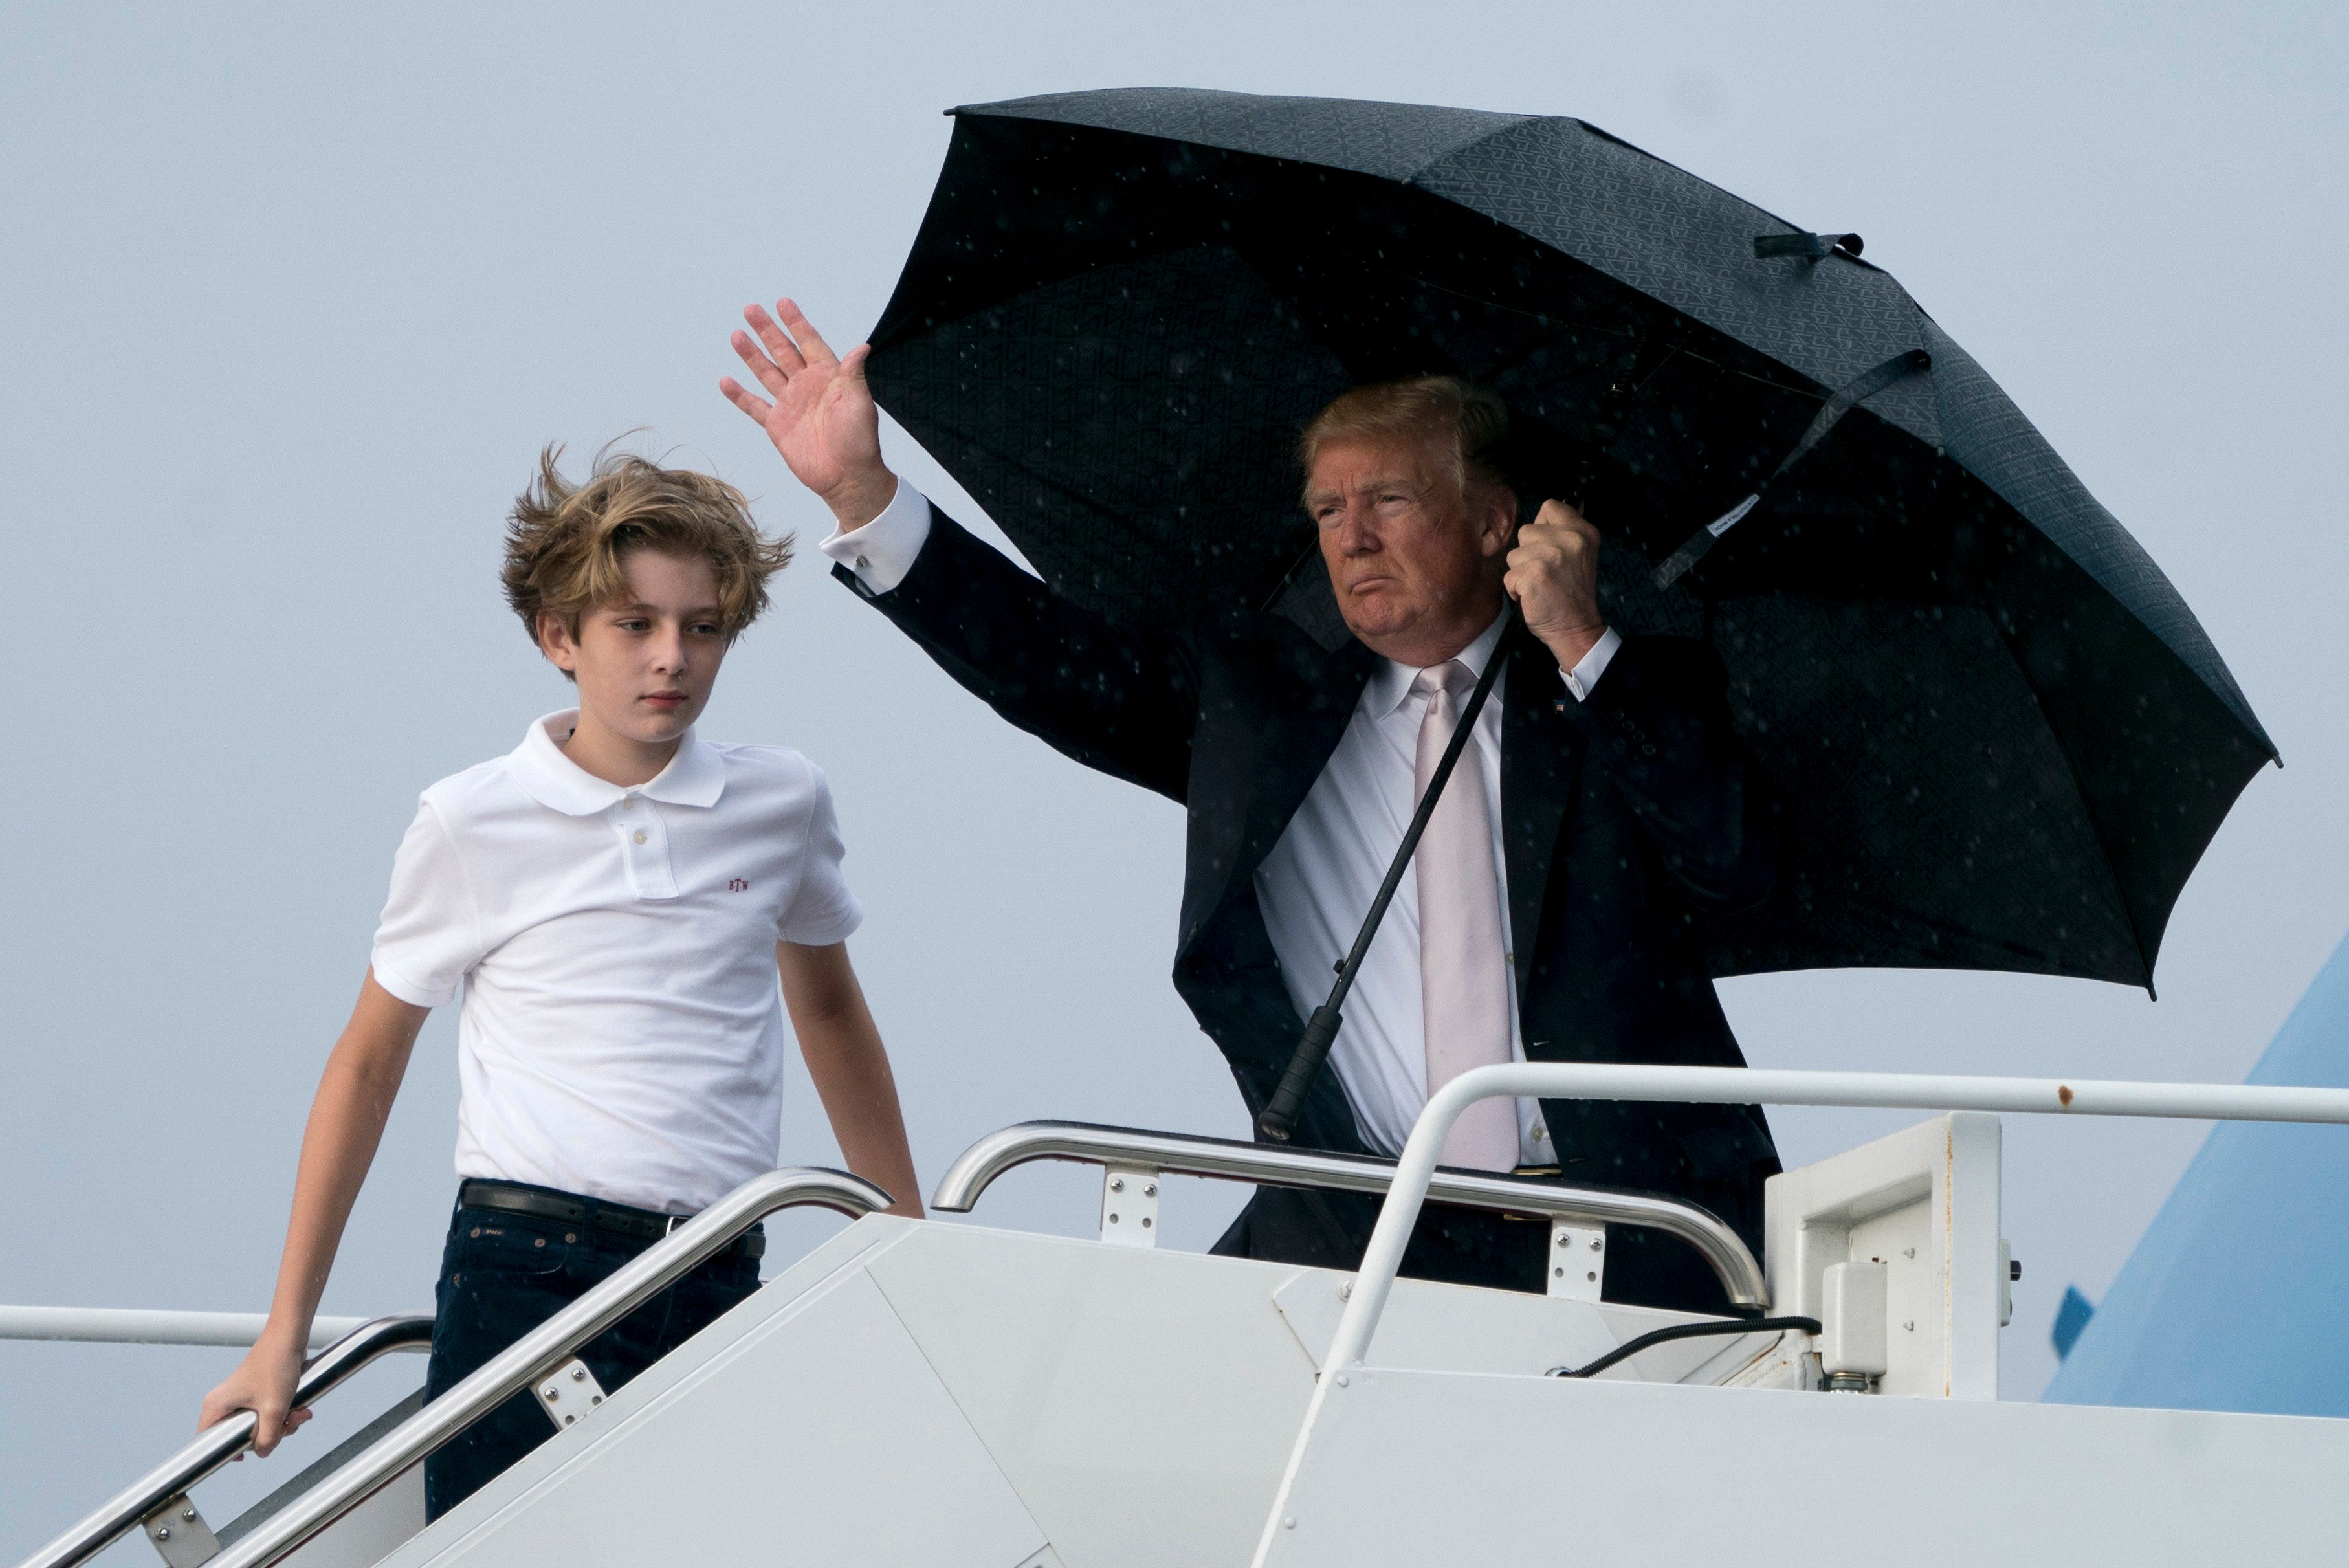 President Donald Trump and his son Barron board Air Force One at Palm Beach International Airport in West Palm Beach, Fla., Monday, Jan. 15, 2018, to travel to Washington. President Trump spent the holiday weekend at Mar-a-Lago, his club in Palm Beach, Fla. (AP Photo/Andrew Harnik)